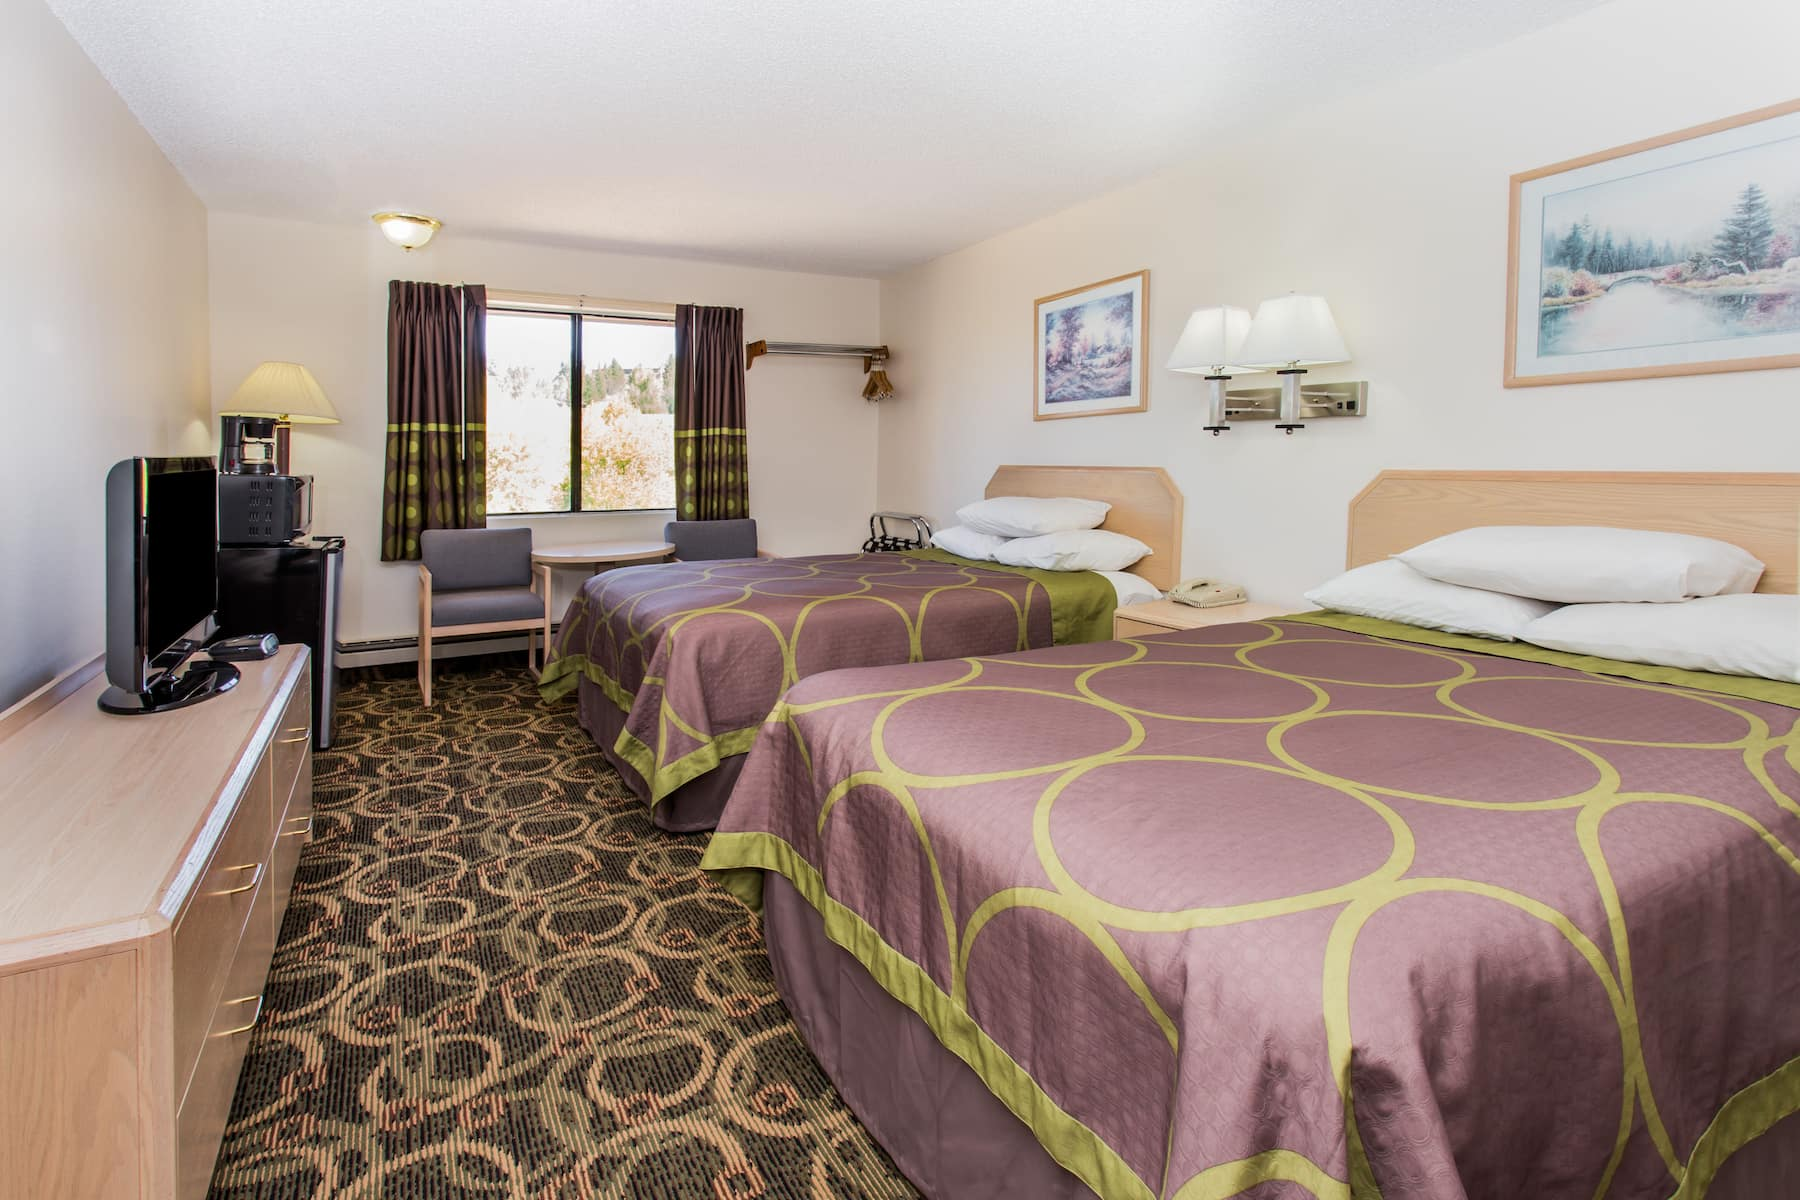 Guest room at the super 8 leadville co in leadville colorado